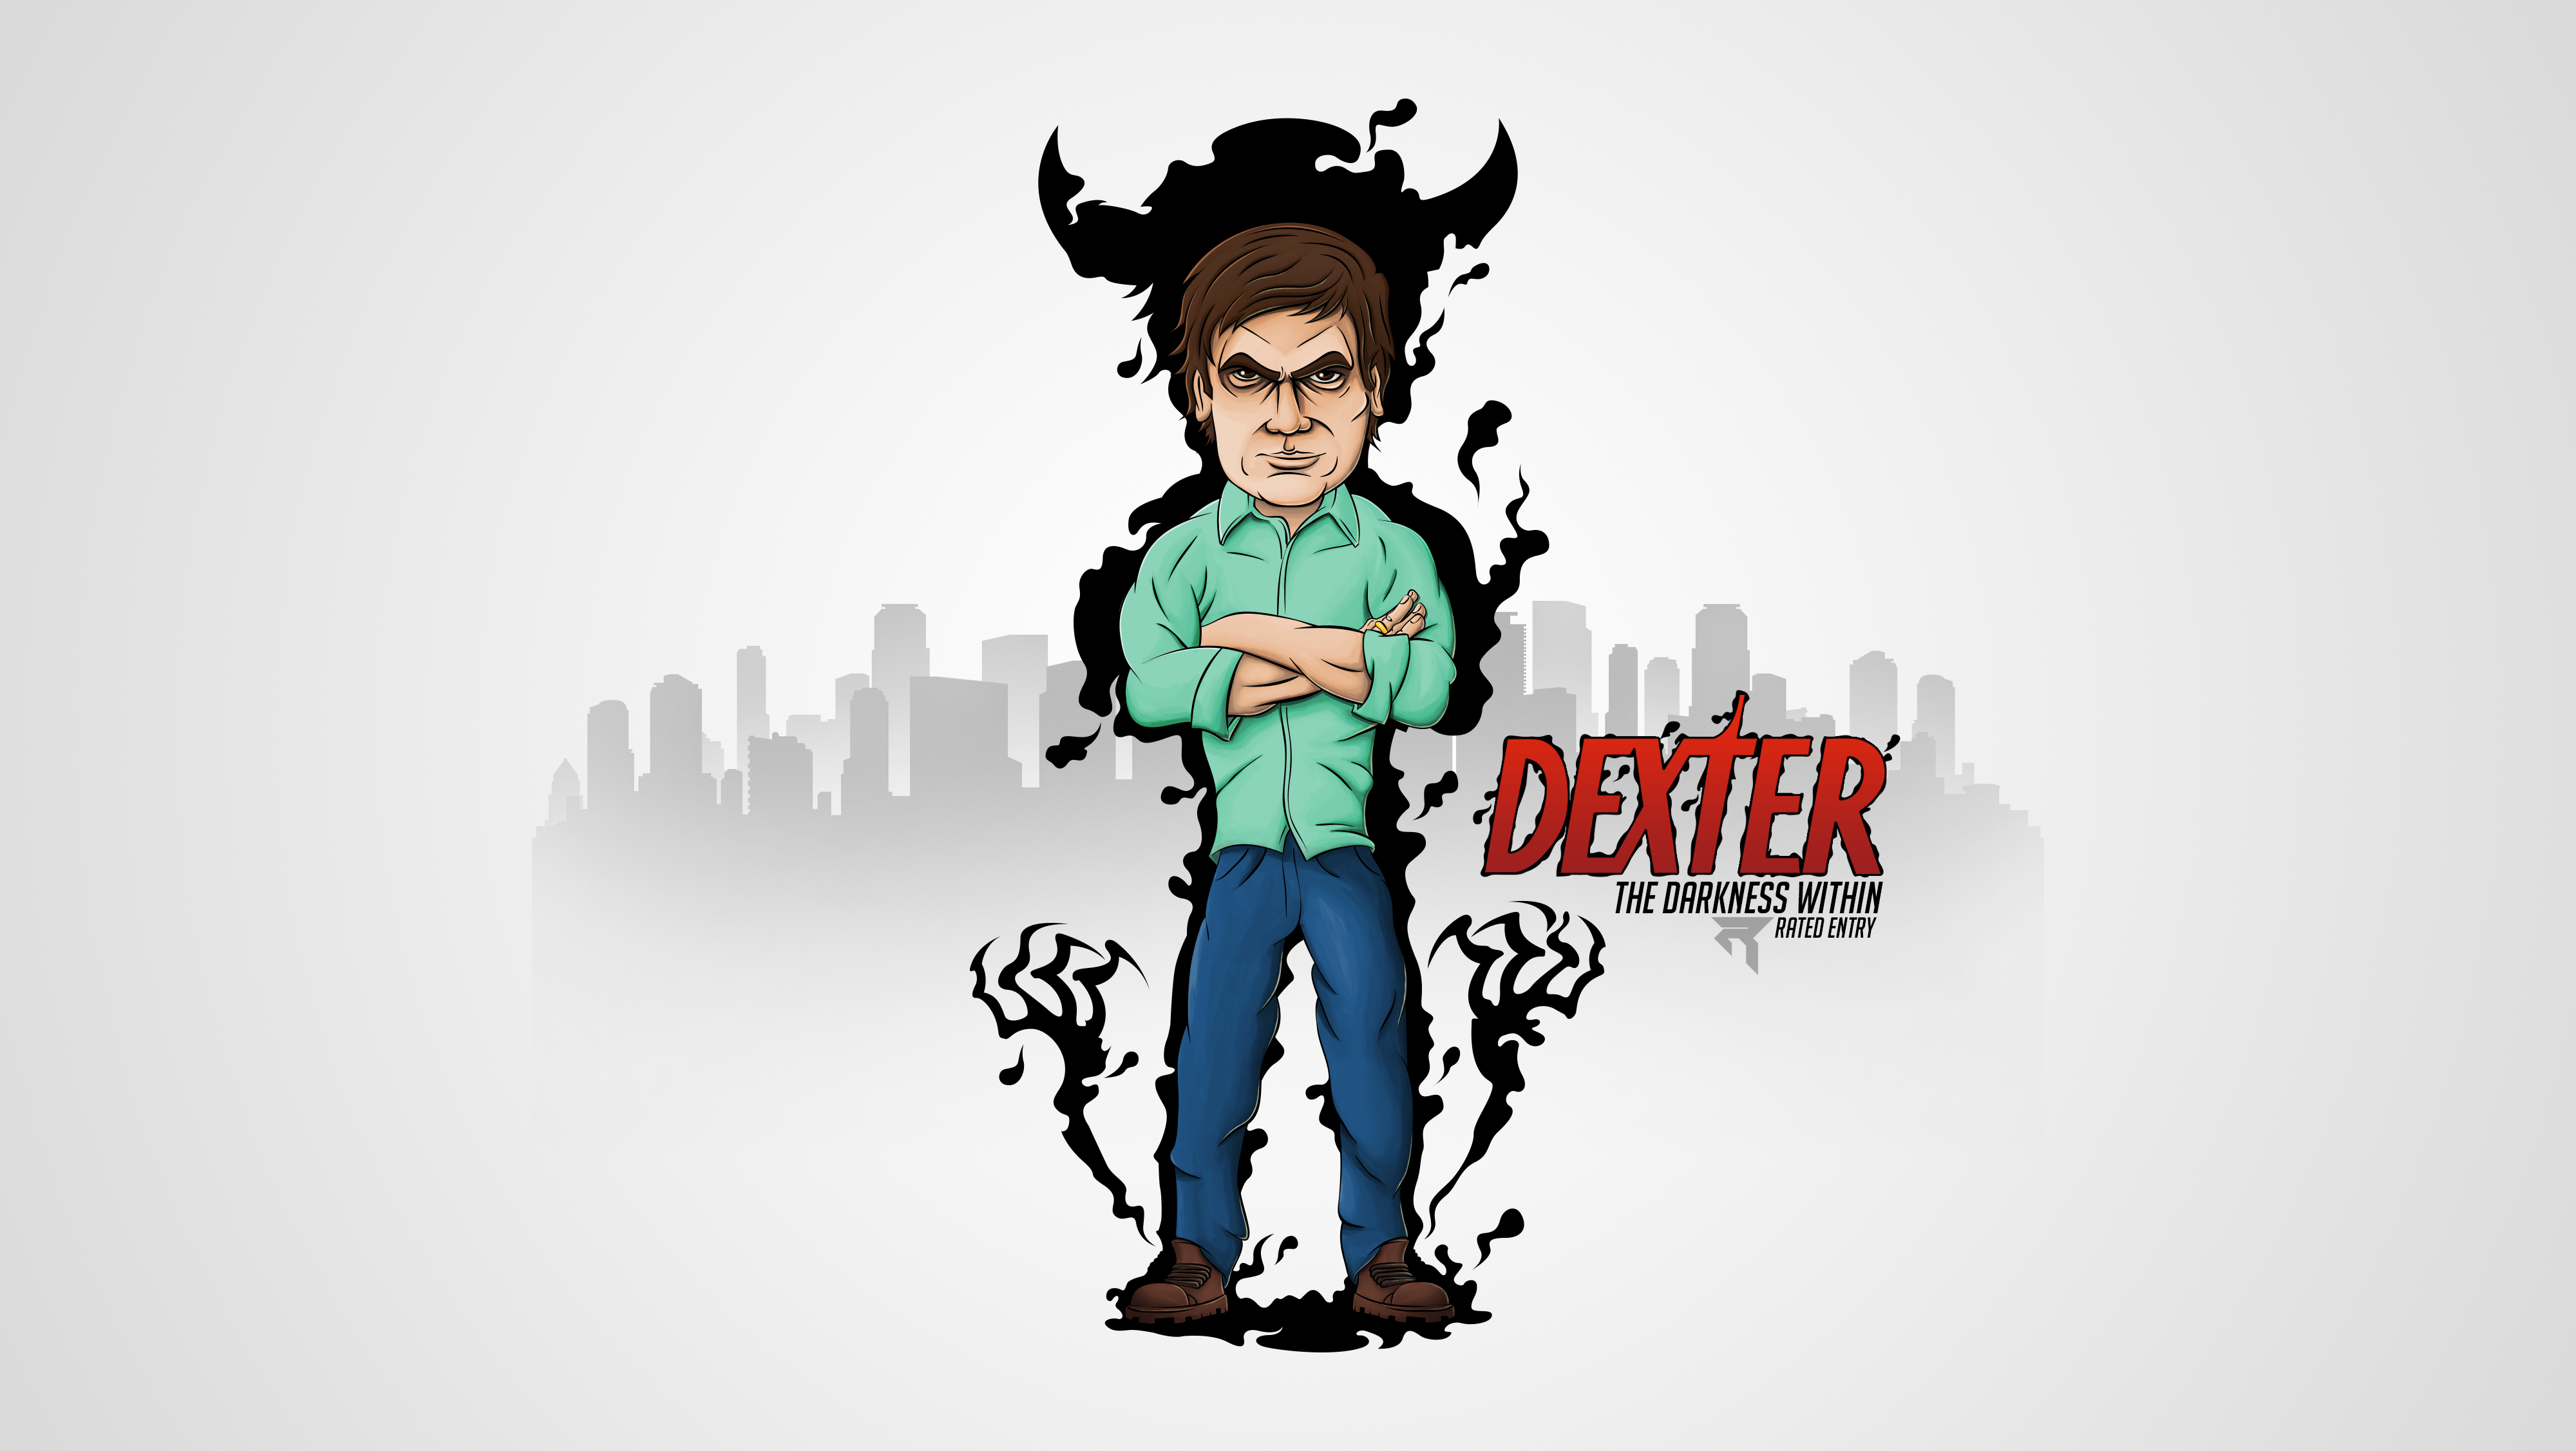 Dexter - The Darkness Within